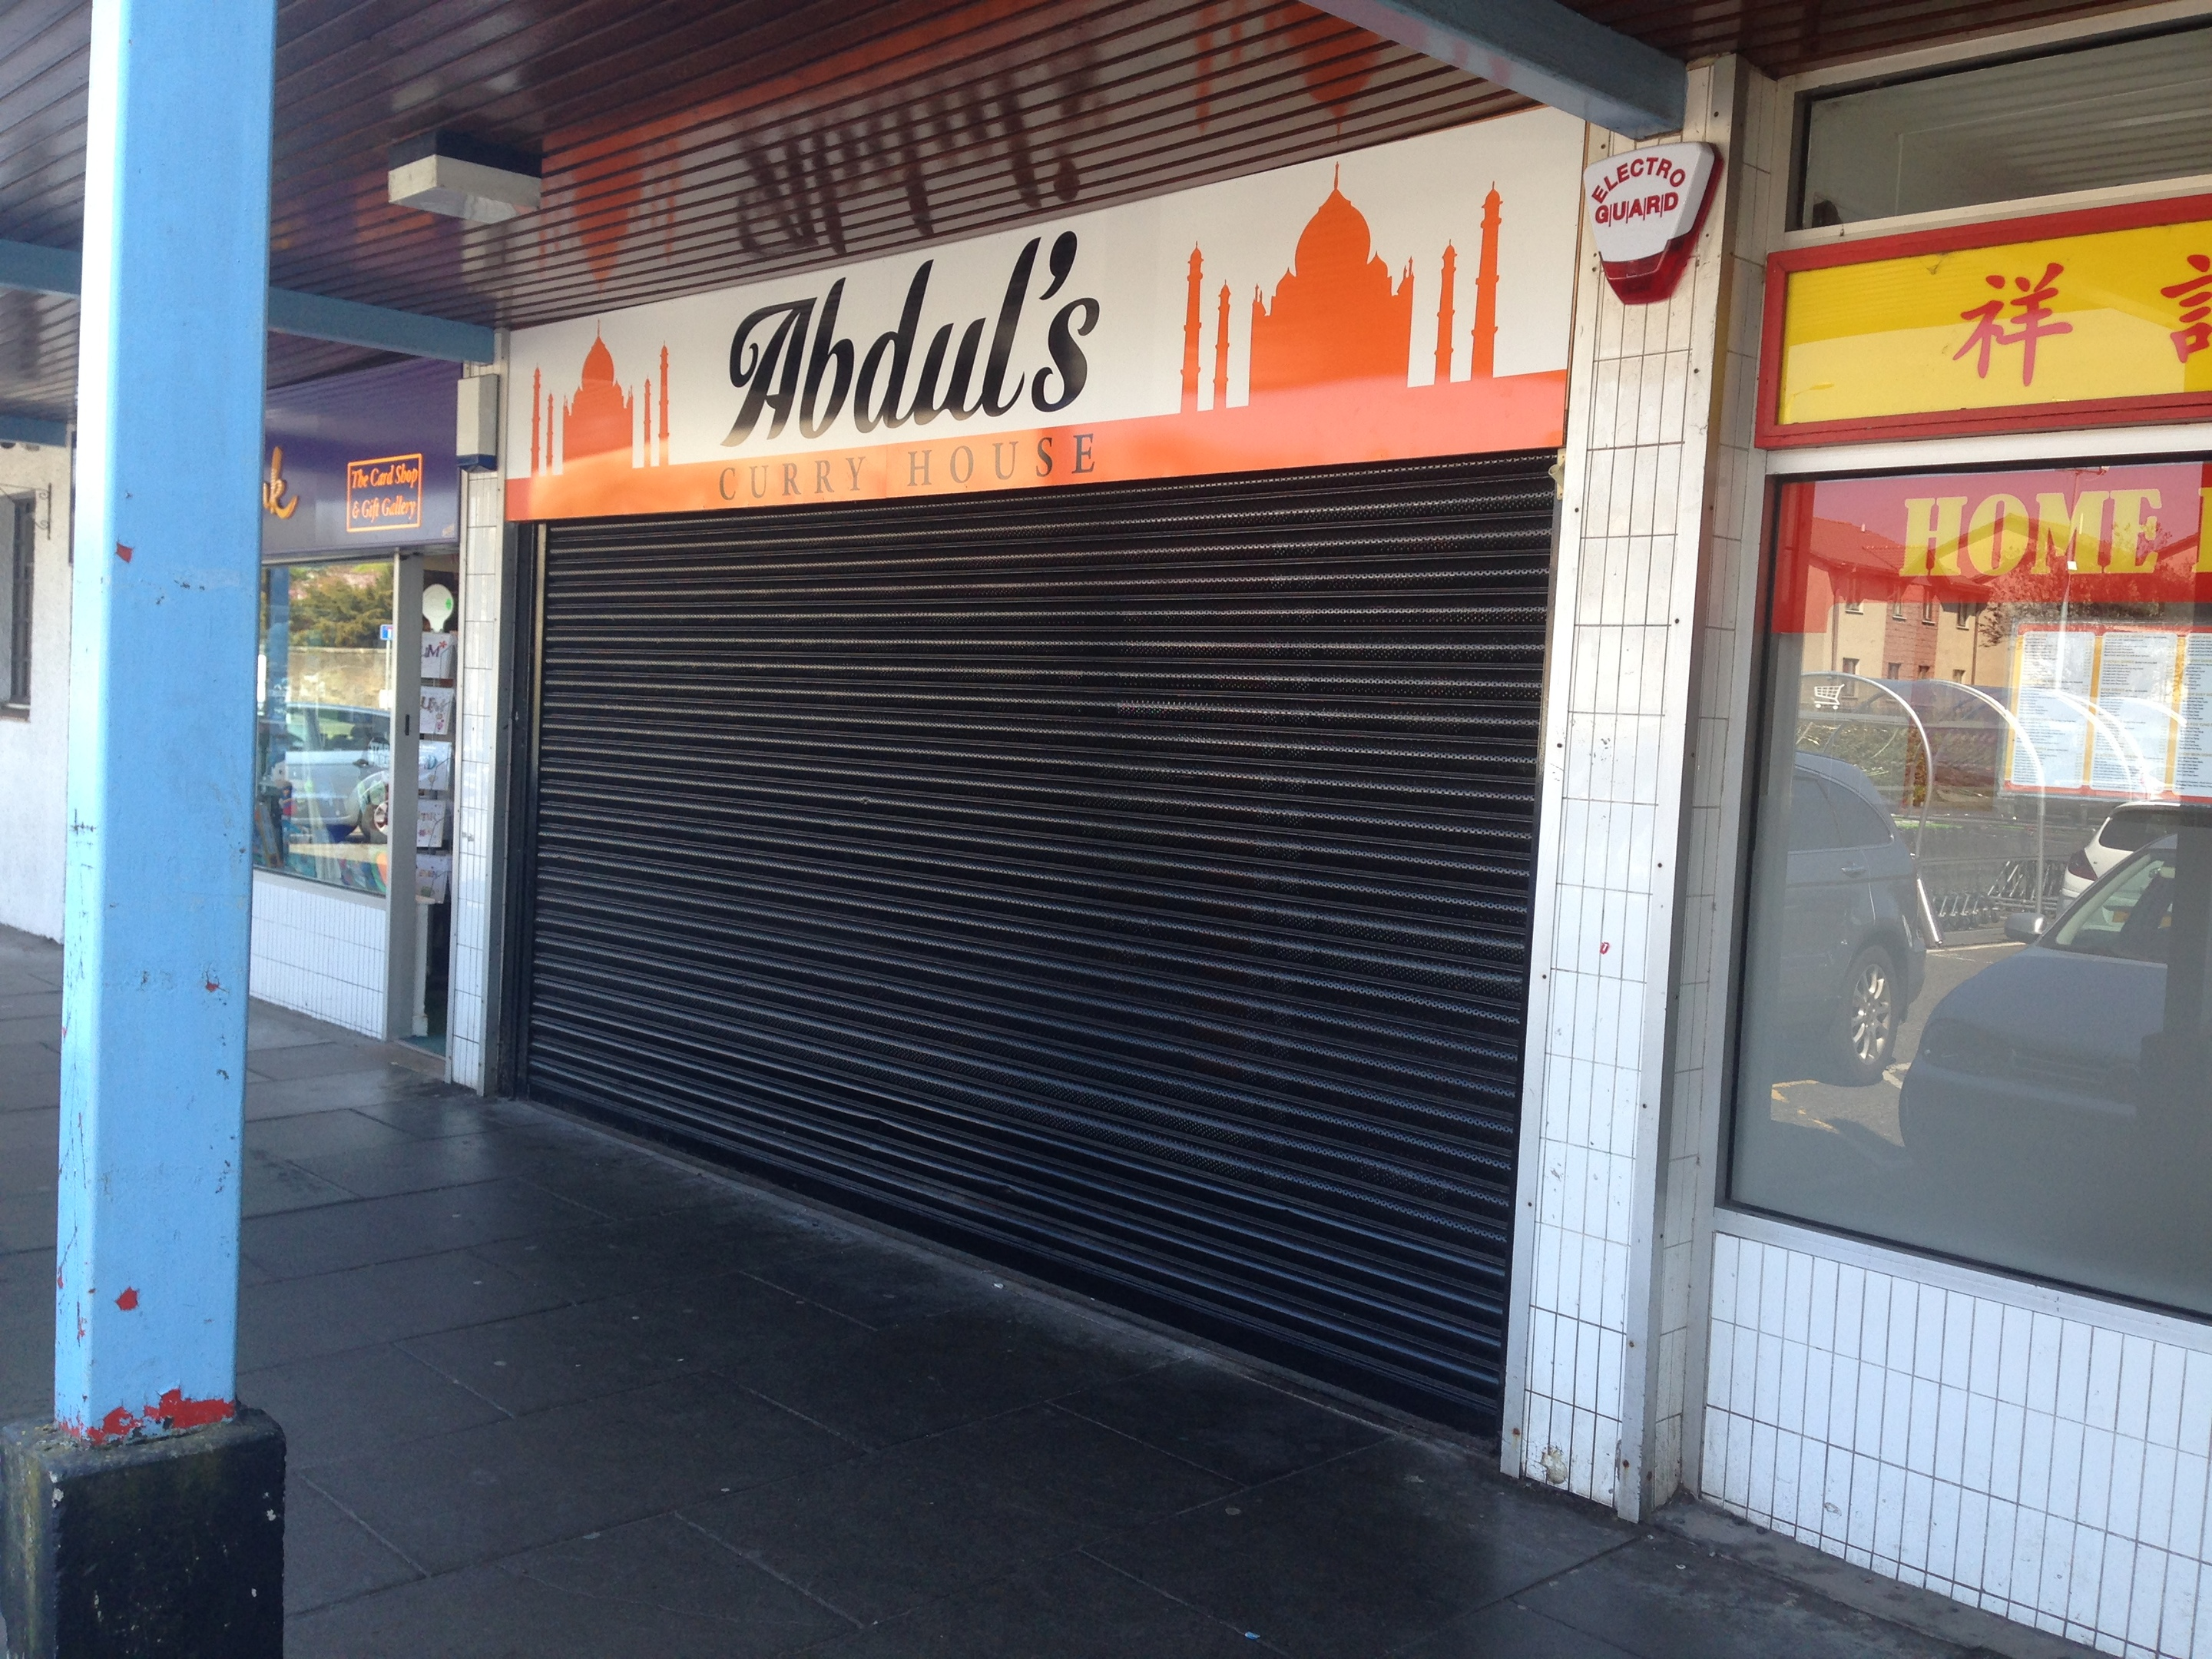 Abdul's Curry House which lost ovens, cookers and tables in the raid